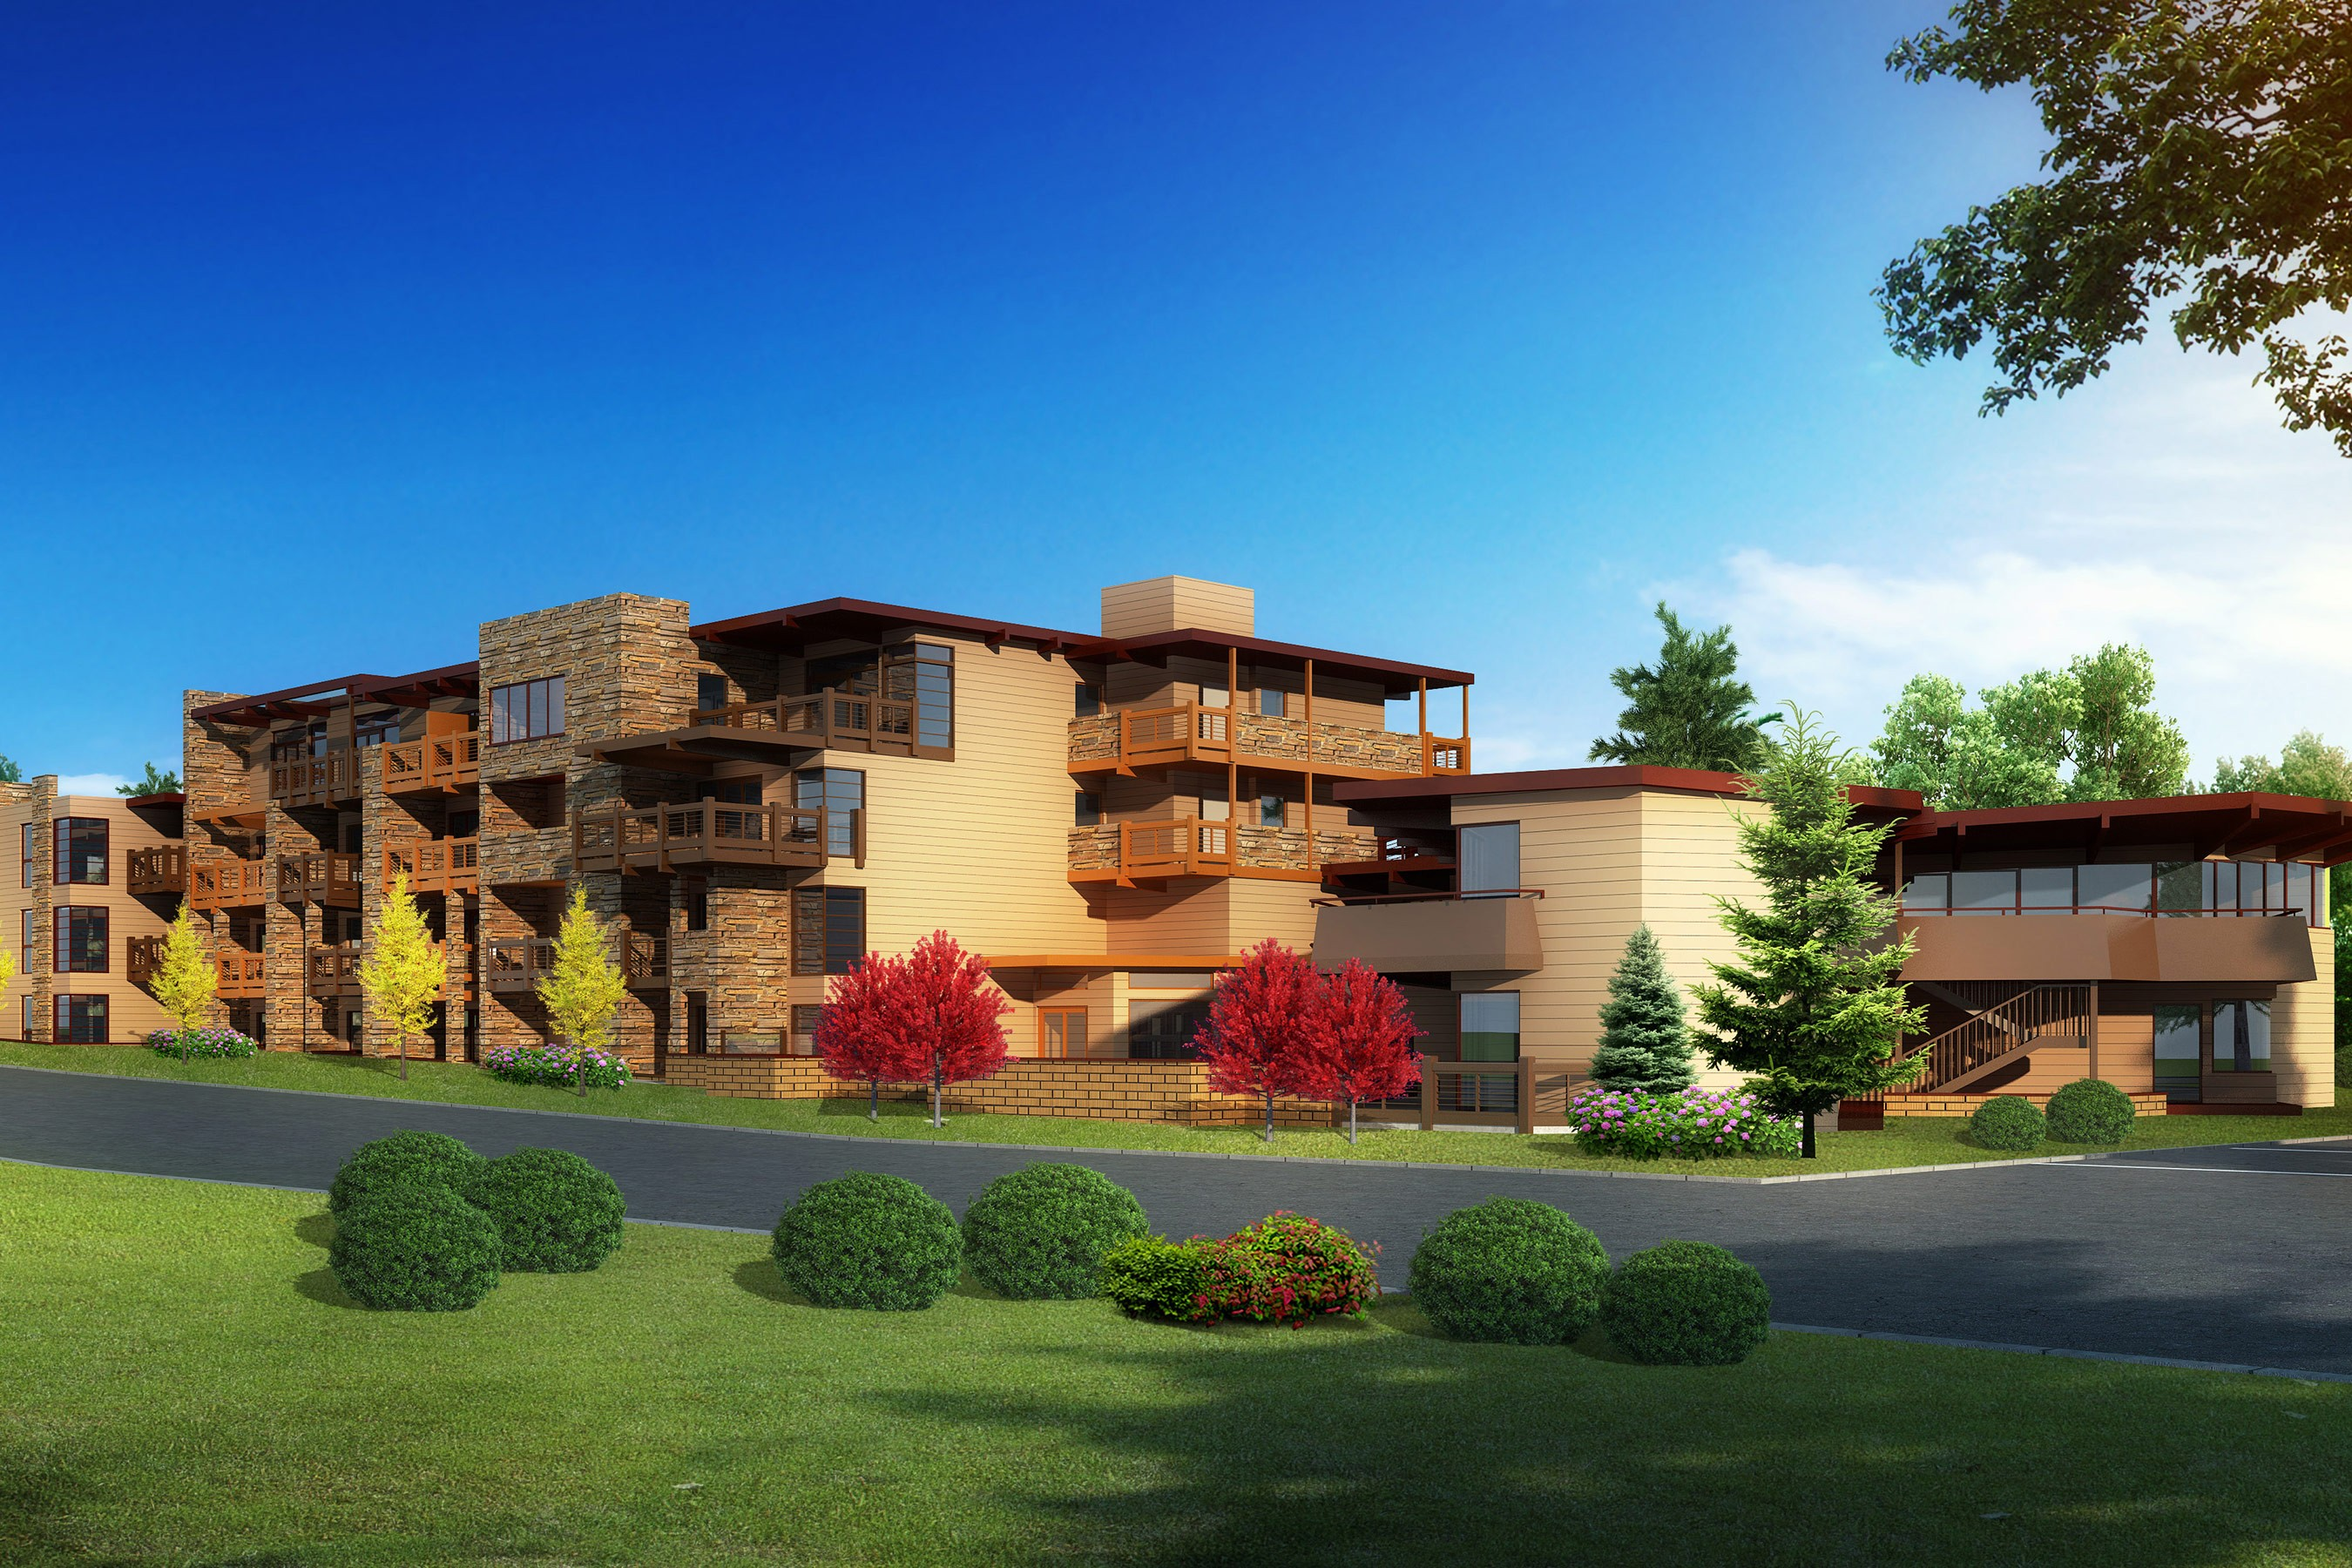 Condominium for Sale at Boomerang Lodge 500 W. Hopkins Avenue Unit 204 Aspen, Colorado, 81611 United States